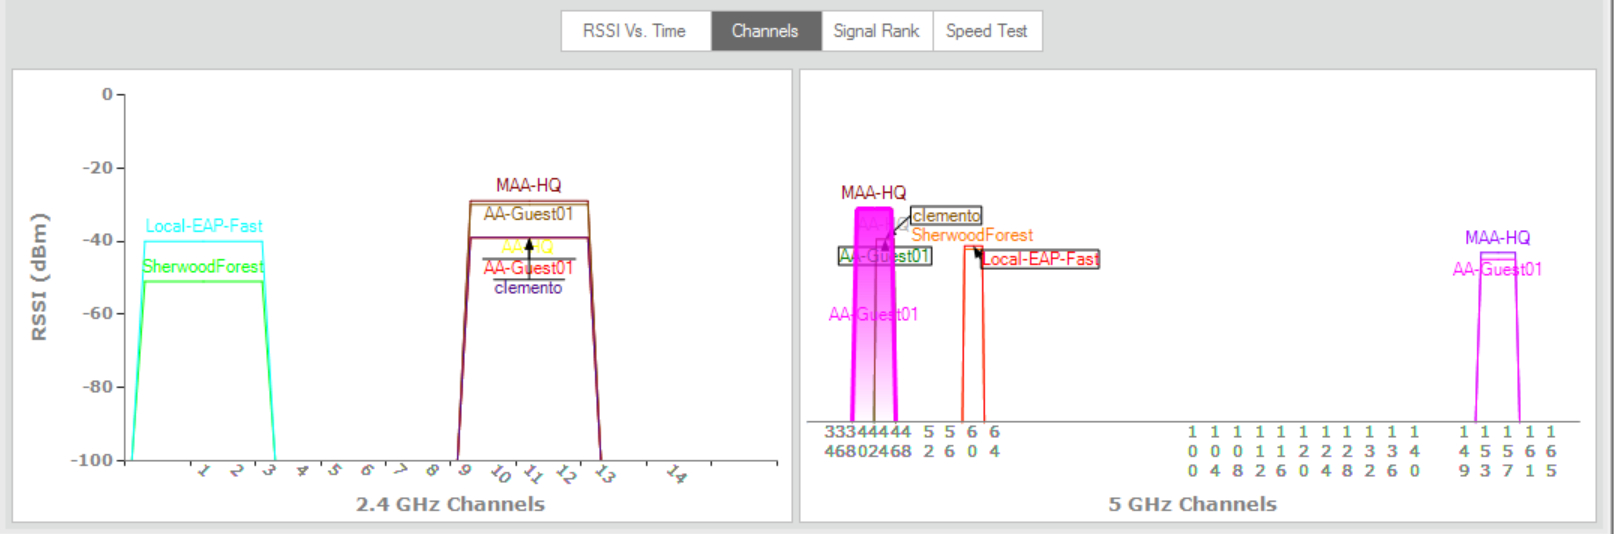 WiFi Scanner Channel Graphs, 2.4 GHz, 5 GHz and Signal Rank